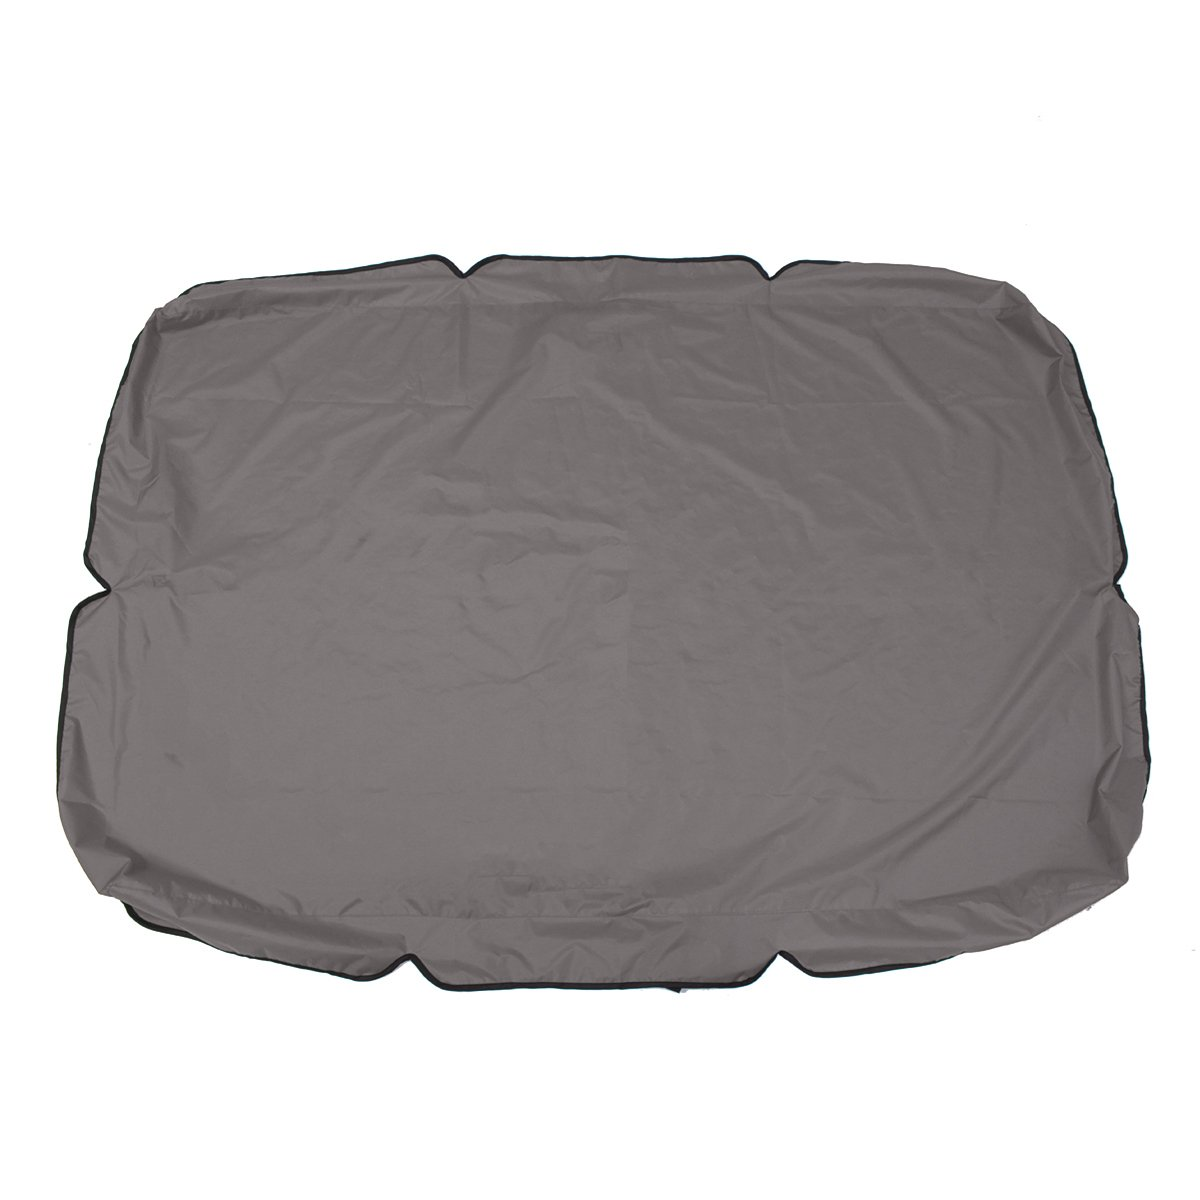 Essort Swing Canopy, 2 to 3 Seaters Waterproof Anti-UV Swing Top Cover Canopy Replacement for Outdoor Porch Patio Swing and Garden Hammock, 75'' × 52'' × 5.9'' Grey by ESSORT (Image #2)